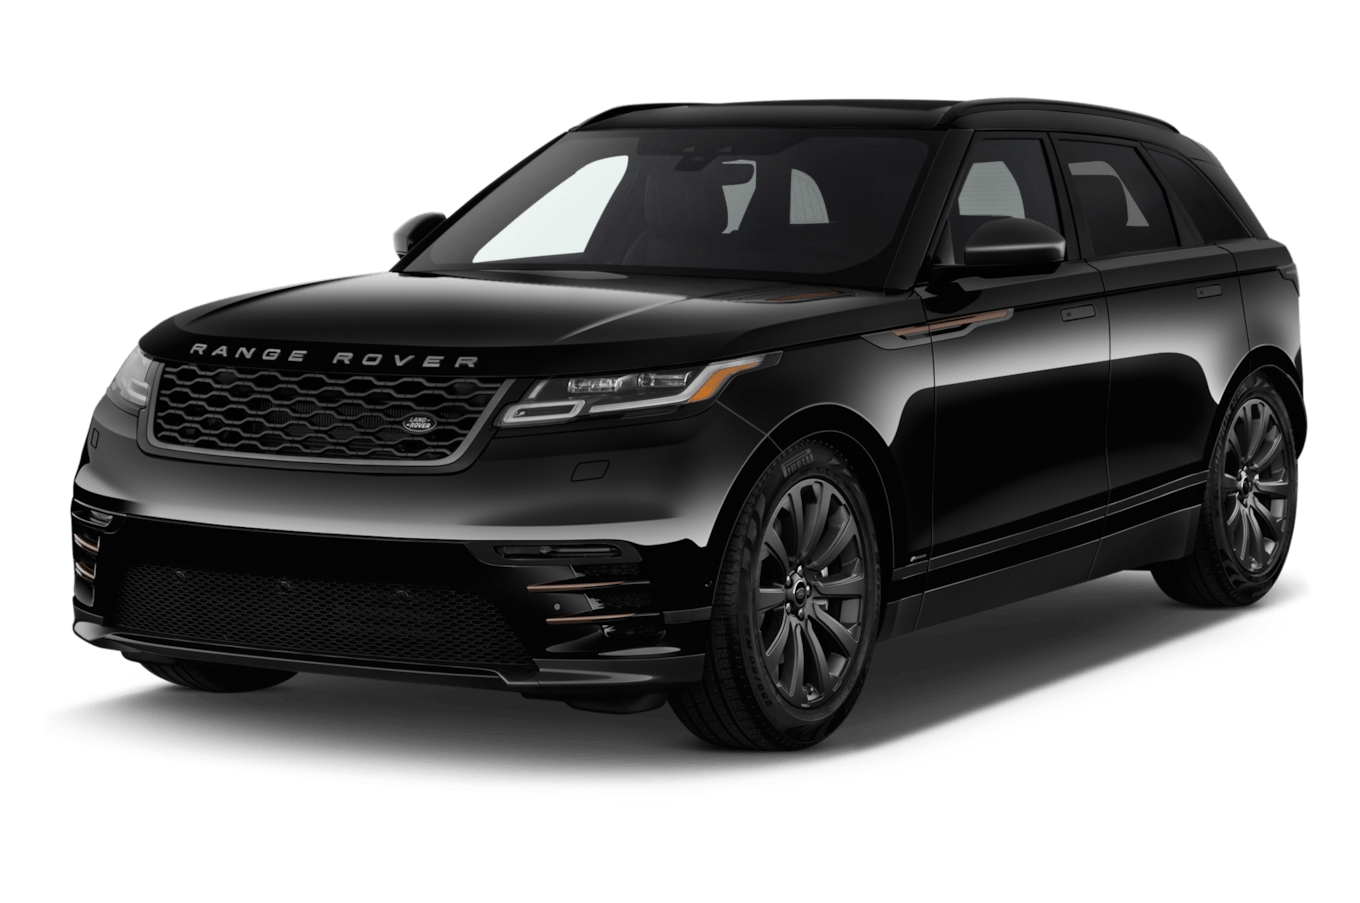 Landrover Range 2018 Land Rover Range Rover Velar Reviews And Rating Motortrend